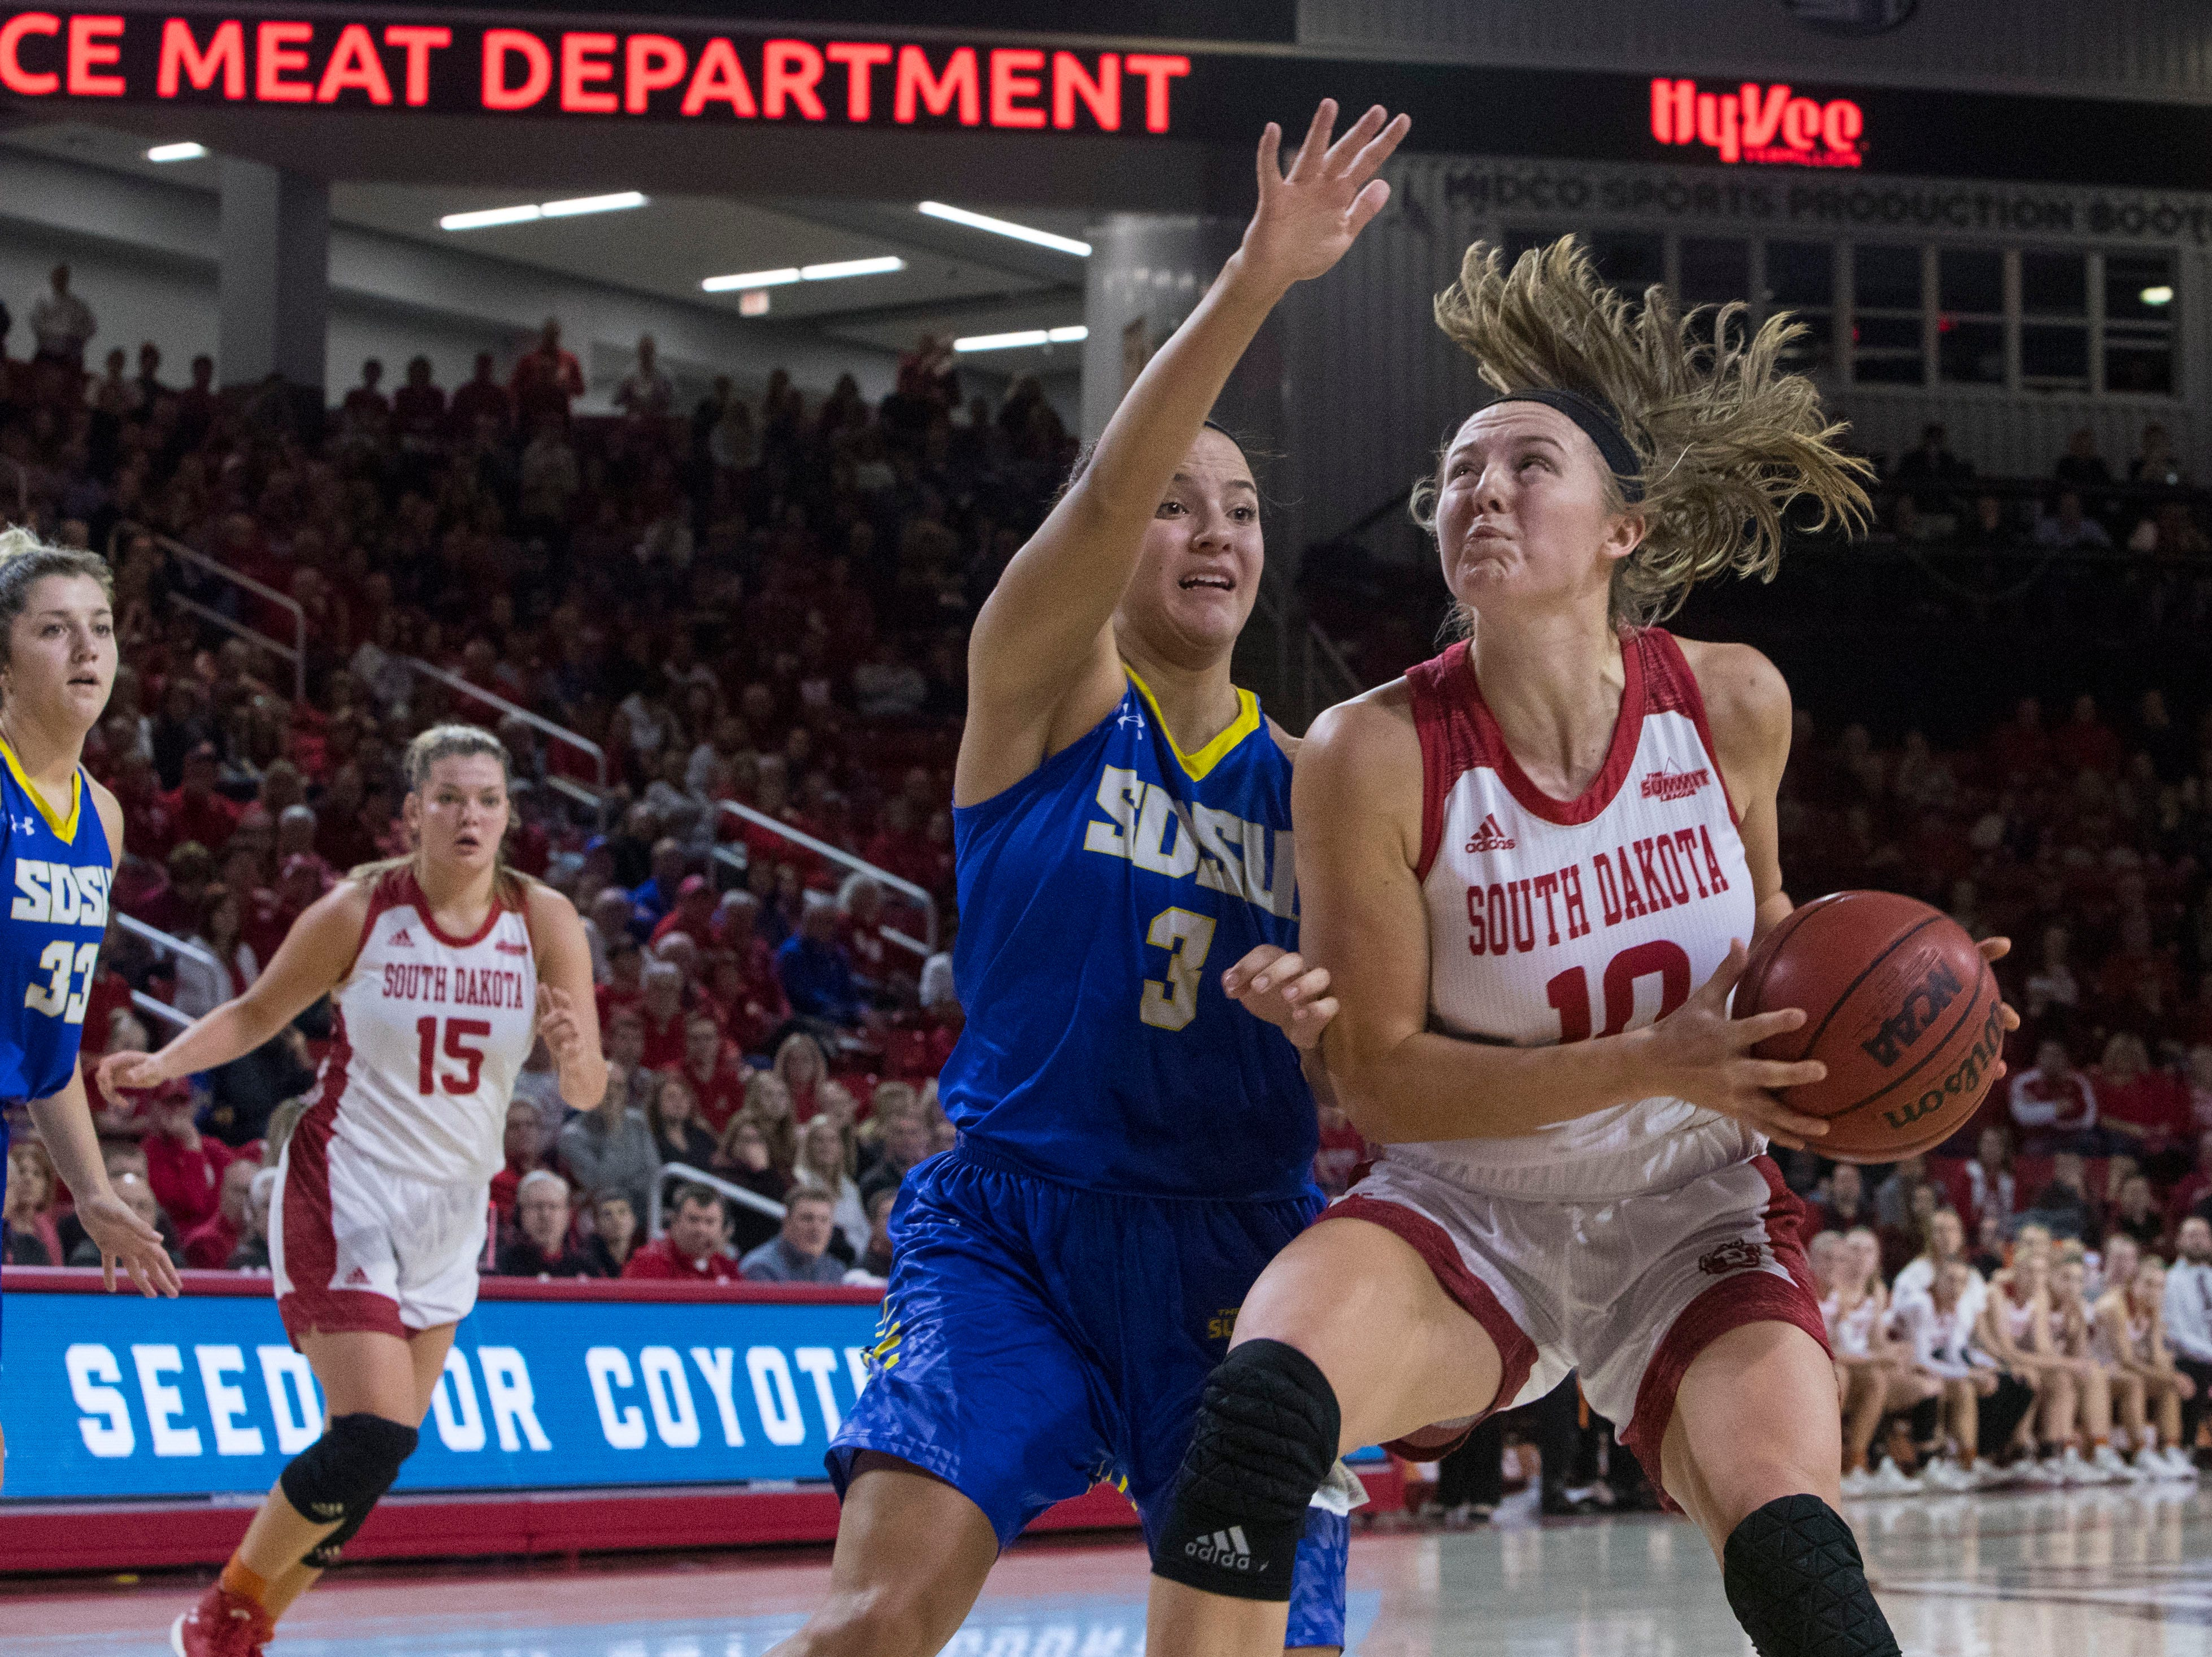 SDSU's Lindsey Theuninck (3) blocks USD's Allison Arens (10) during a game, Sunday, Jan. 6, 2019 in Vermillion, S.D.